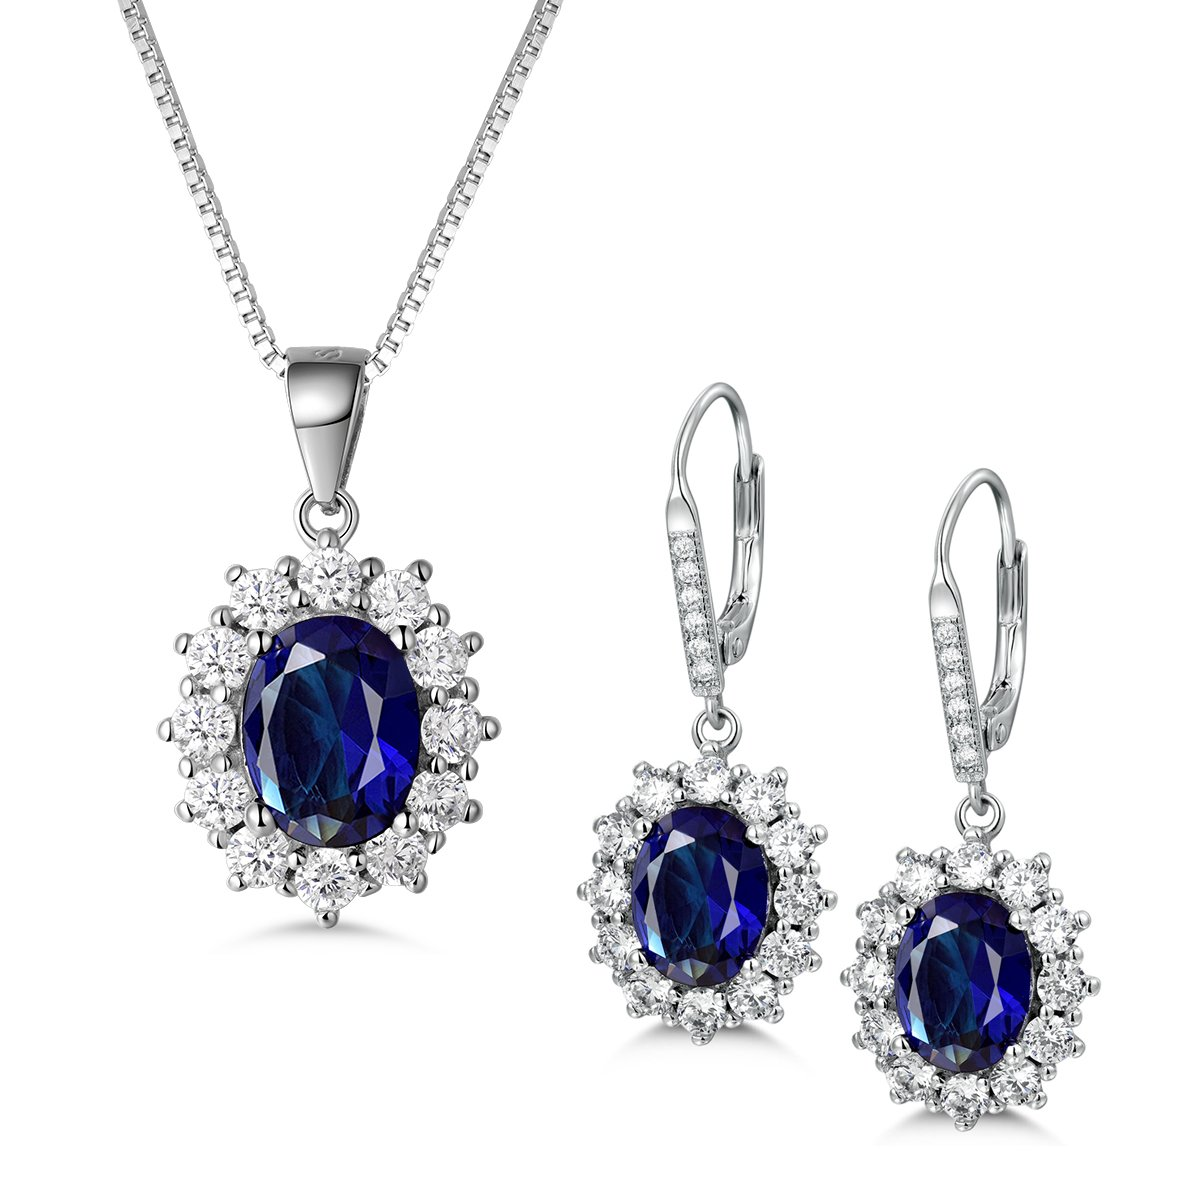 Sterling Silver Cubic Zirconia And Saphire Cubic Zirconia Drop Necklace